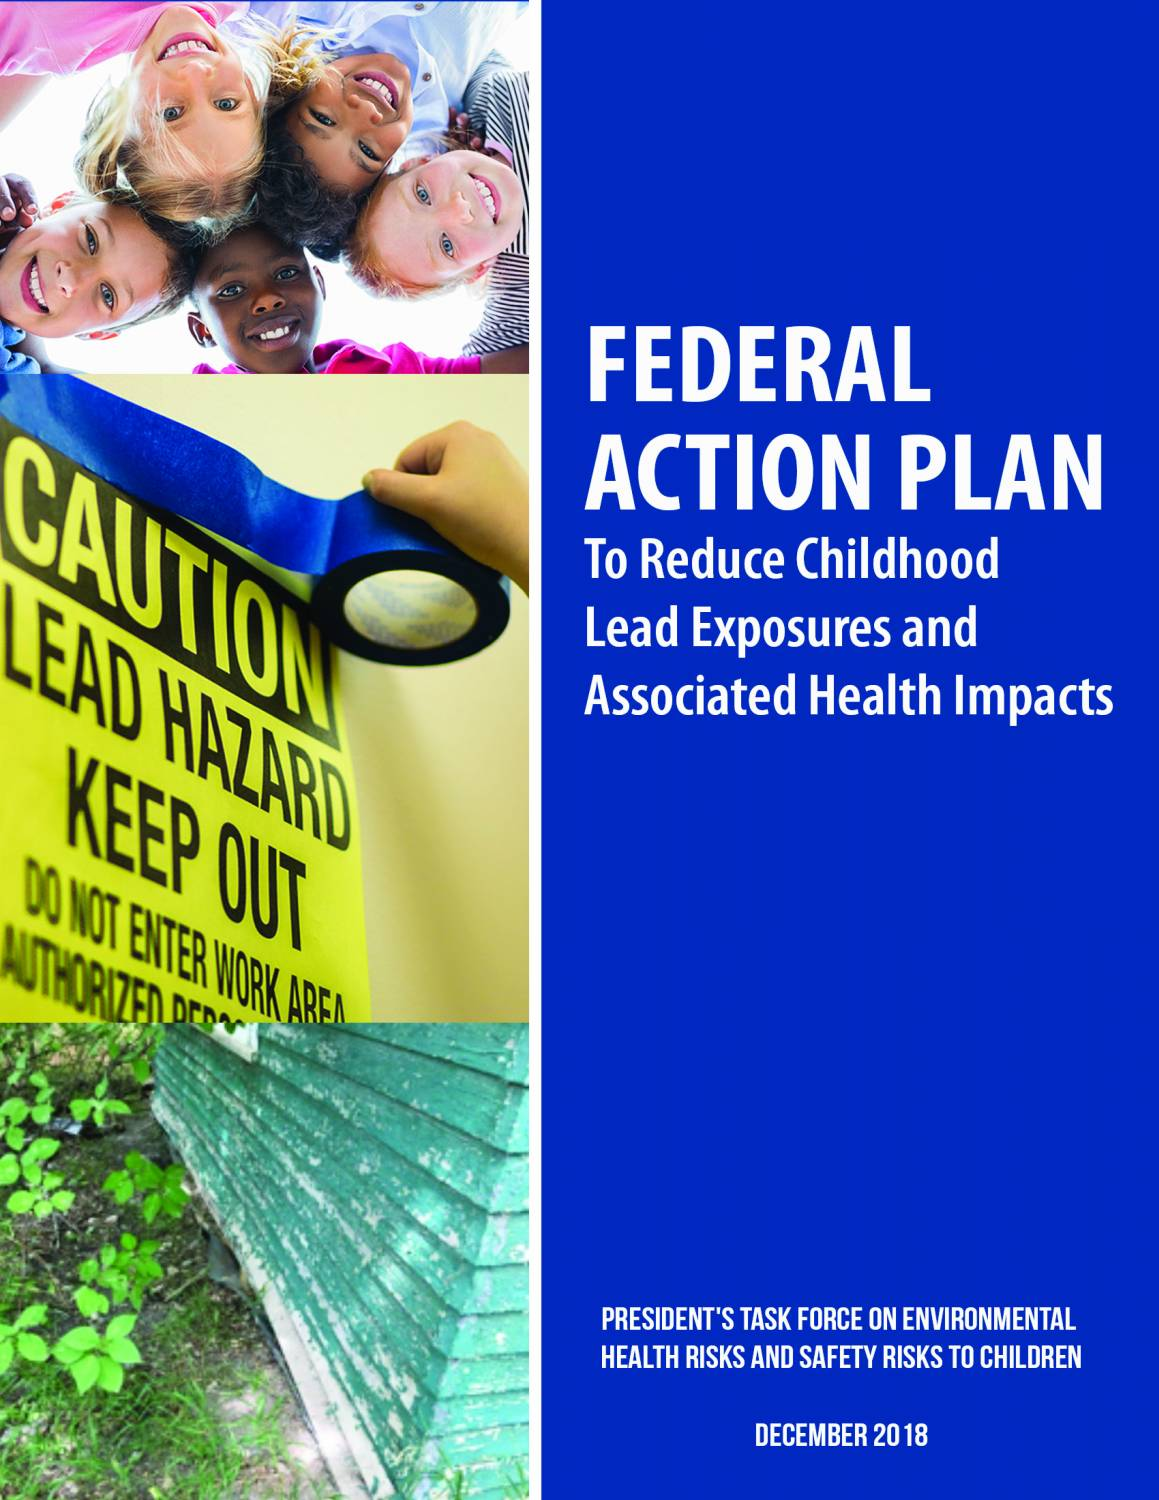 Federal Action Plan to Reduce Childhood Lead Exposures and Associated Health Impacts [2018 Edition]